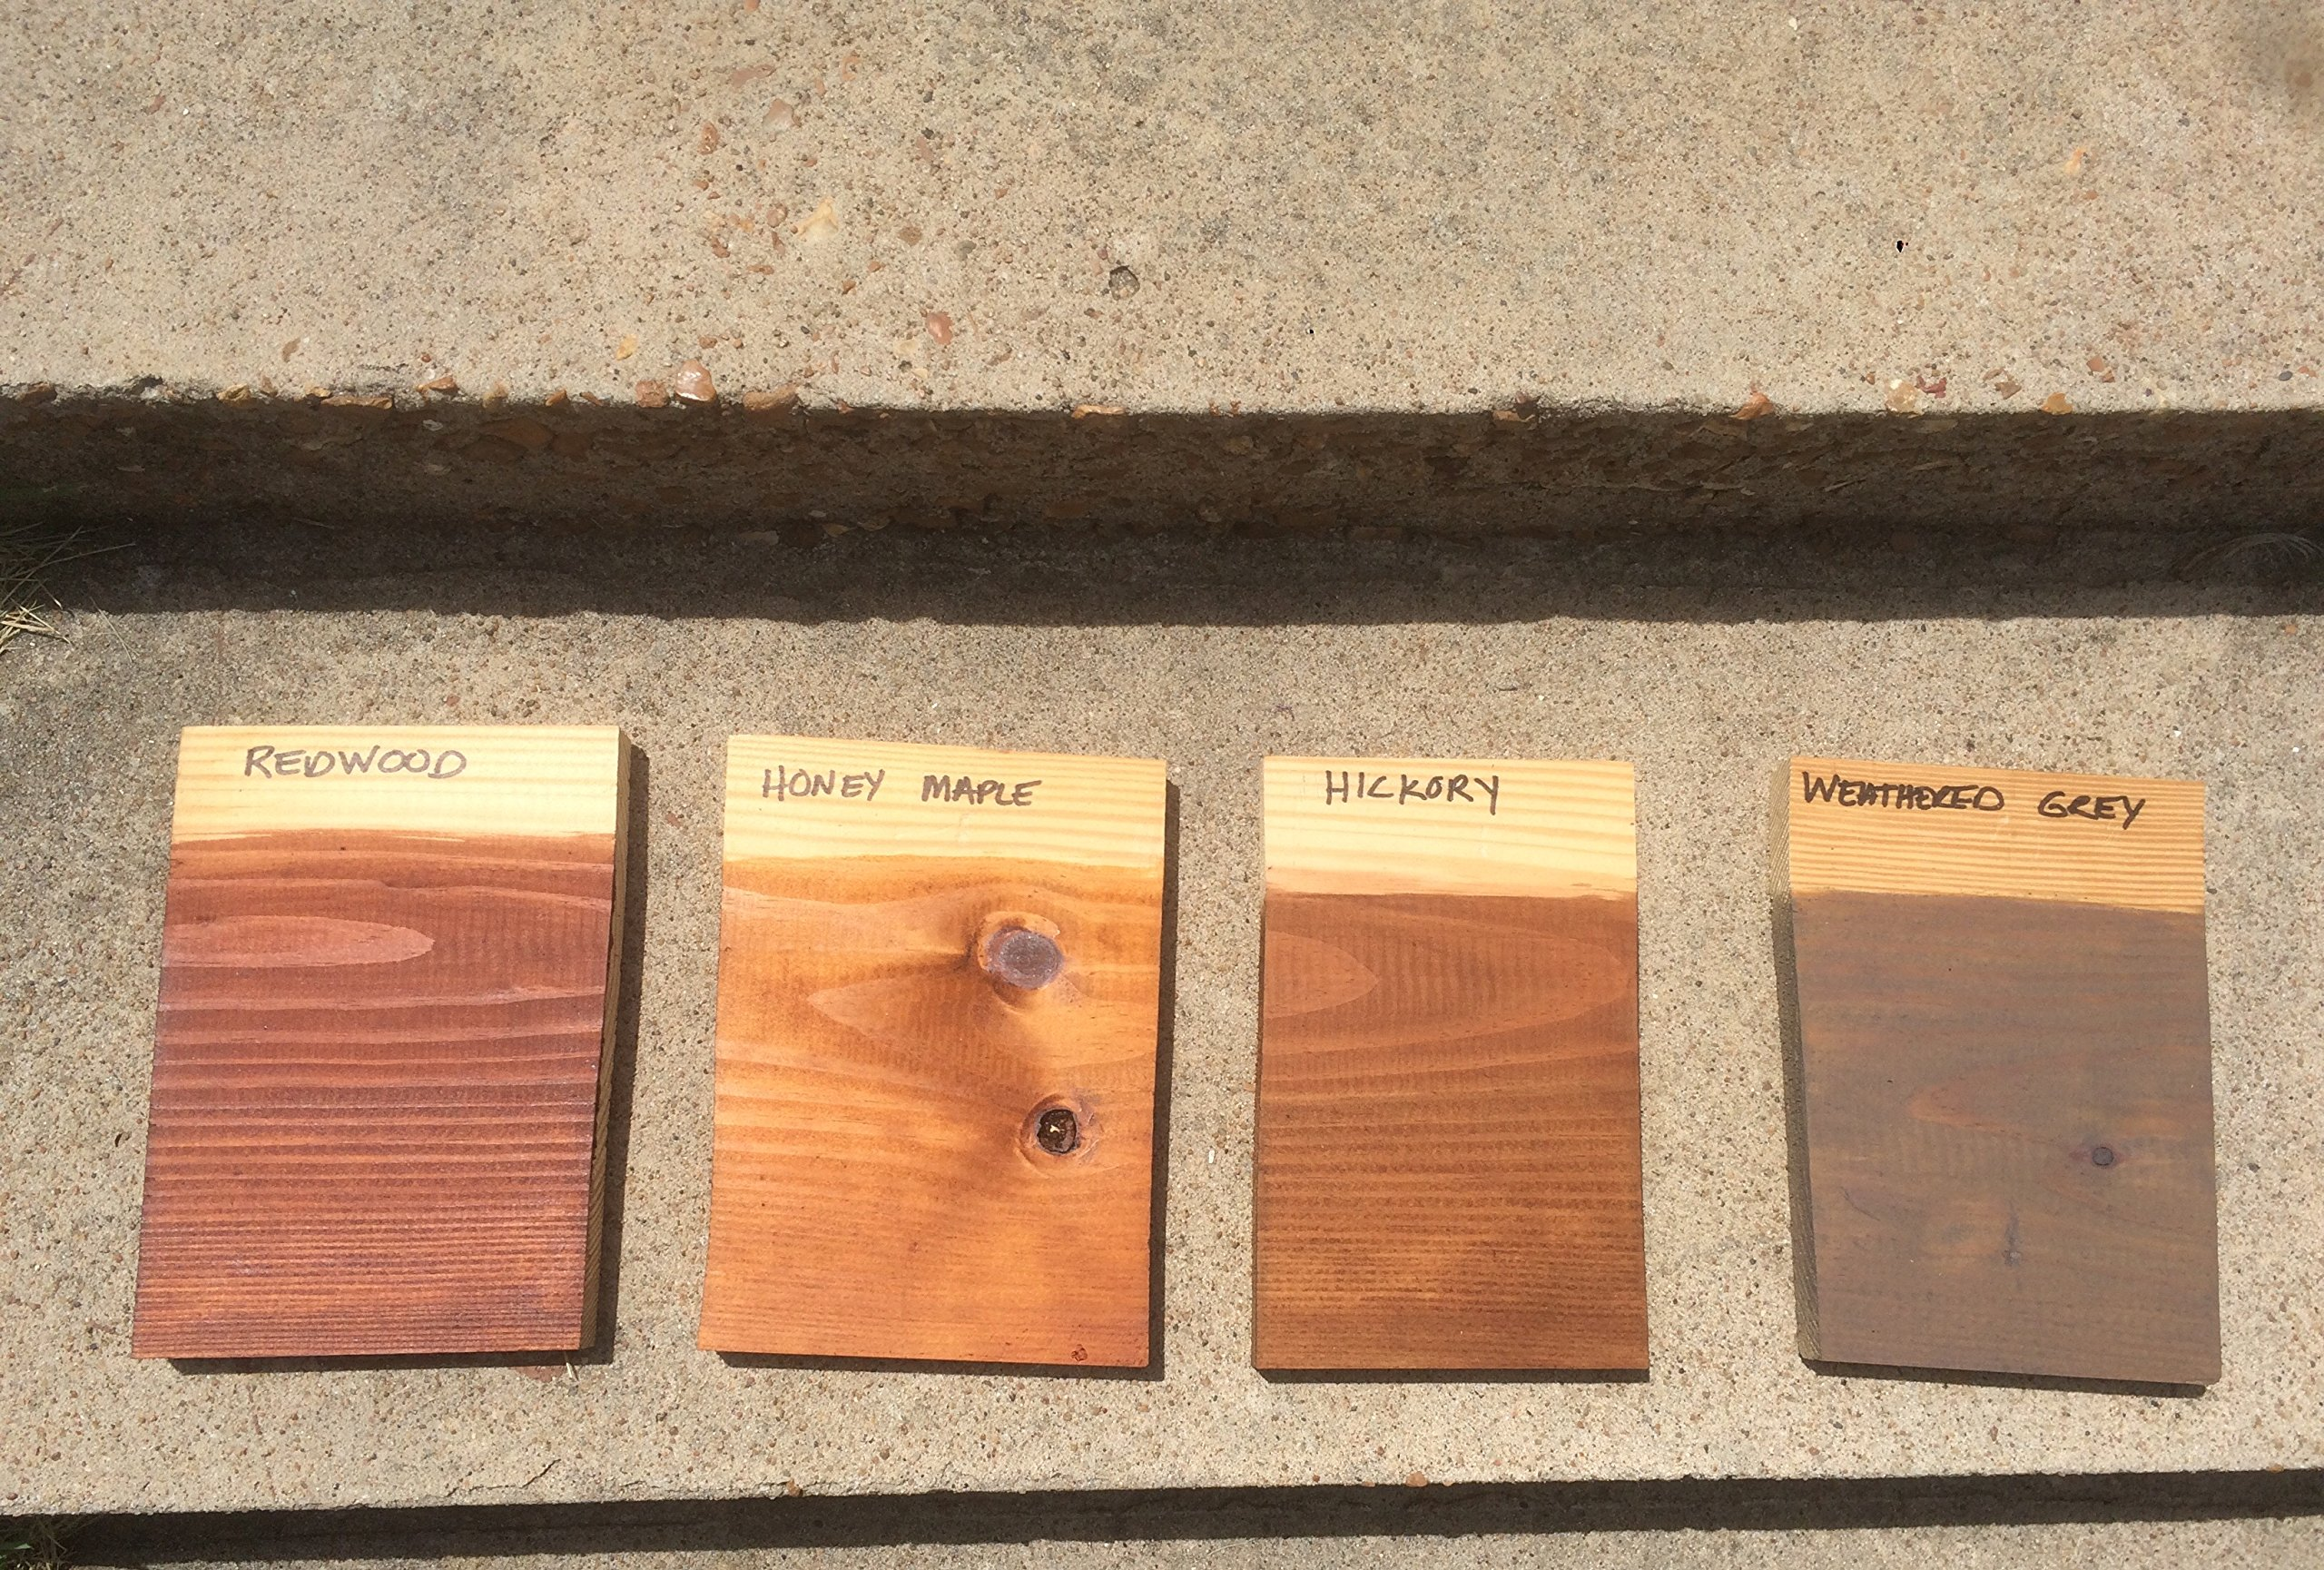 Sierra Brown Wet Wood Stain Semi-Transparent Deep Penetrating Tung/Linseed Oil Resists Cracking, Same Day Wash/Apply, Fast Dry 4 hr Recoat, Nano Technology for Excellent UV Protection, Resists Mold/Mildew for Decks, Fences, Siding, Log Homes - 5 Gal by Davlauar Coatings